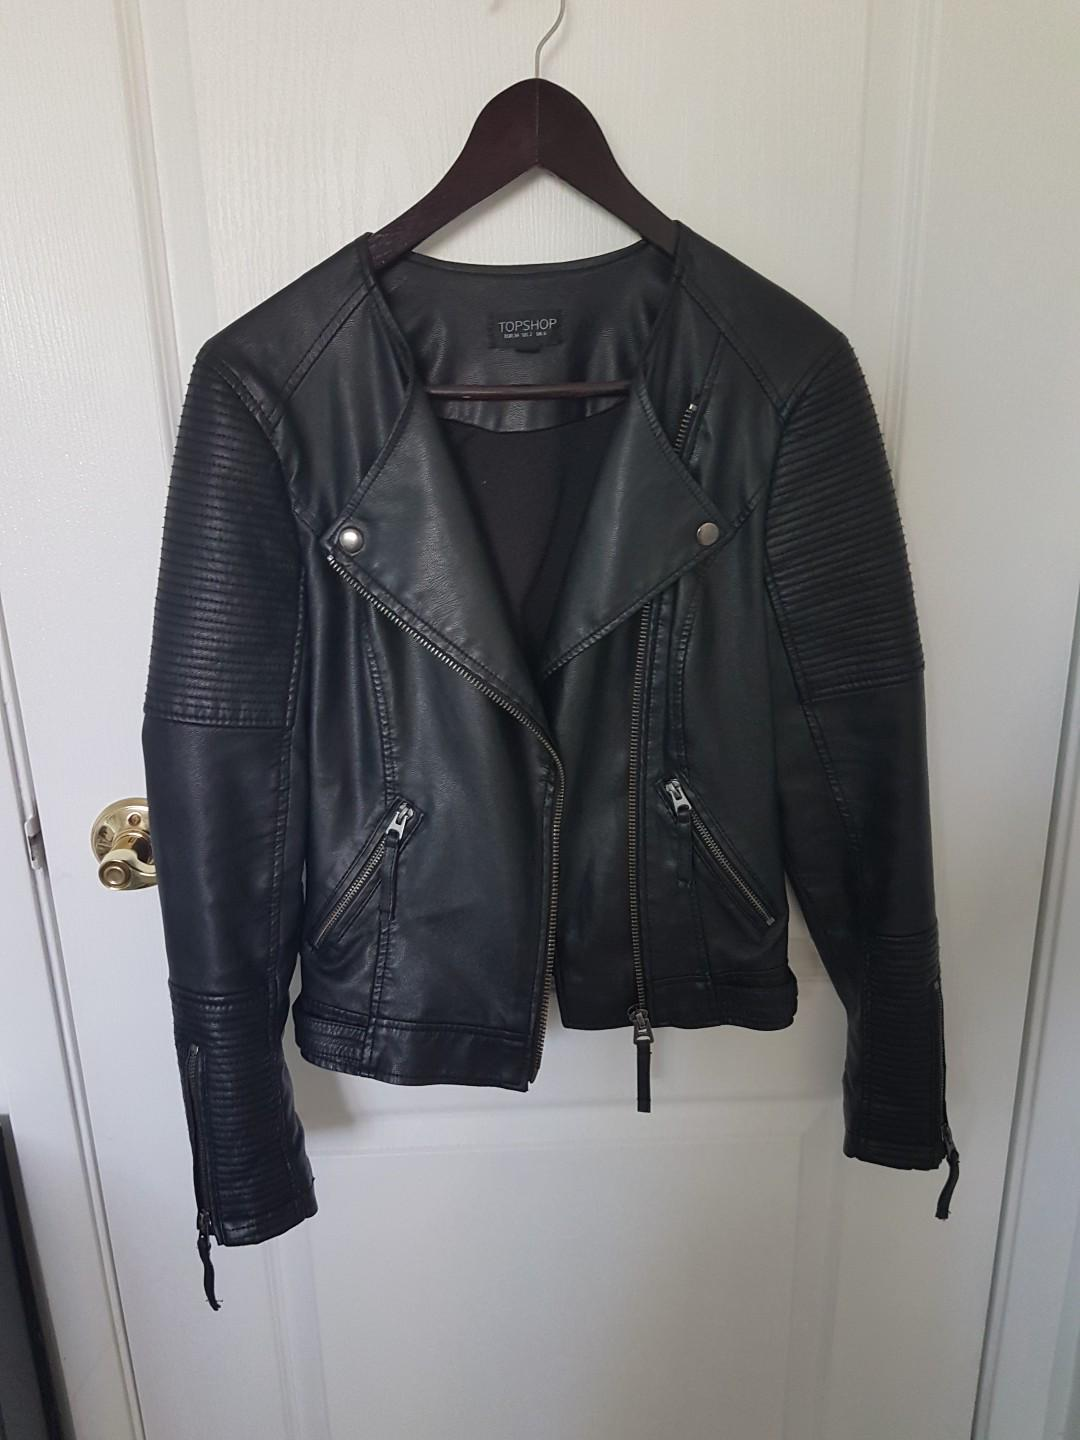 Black Leather Jacket from Topshop